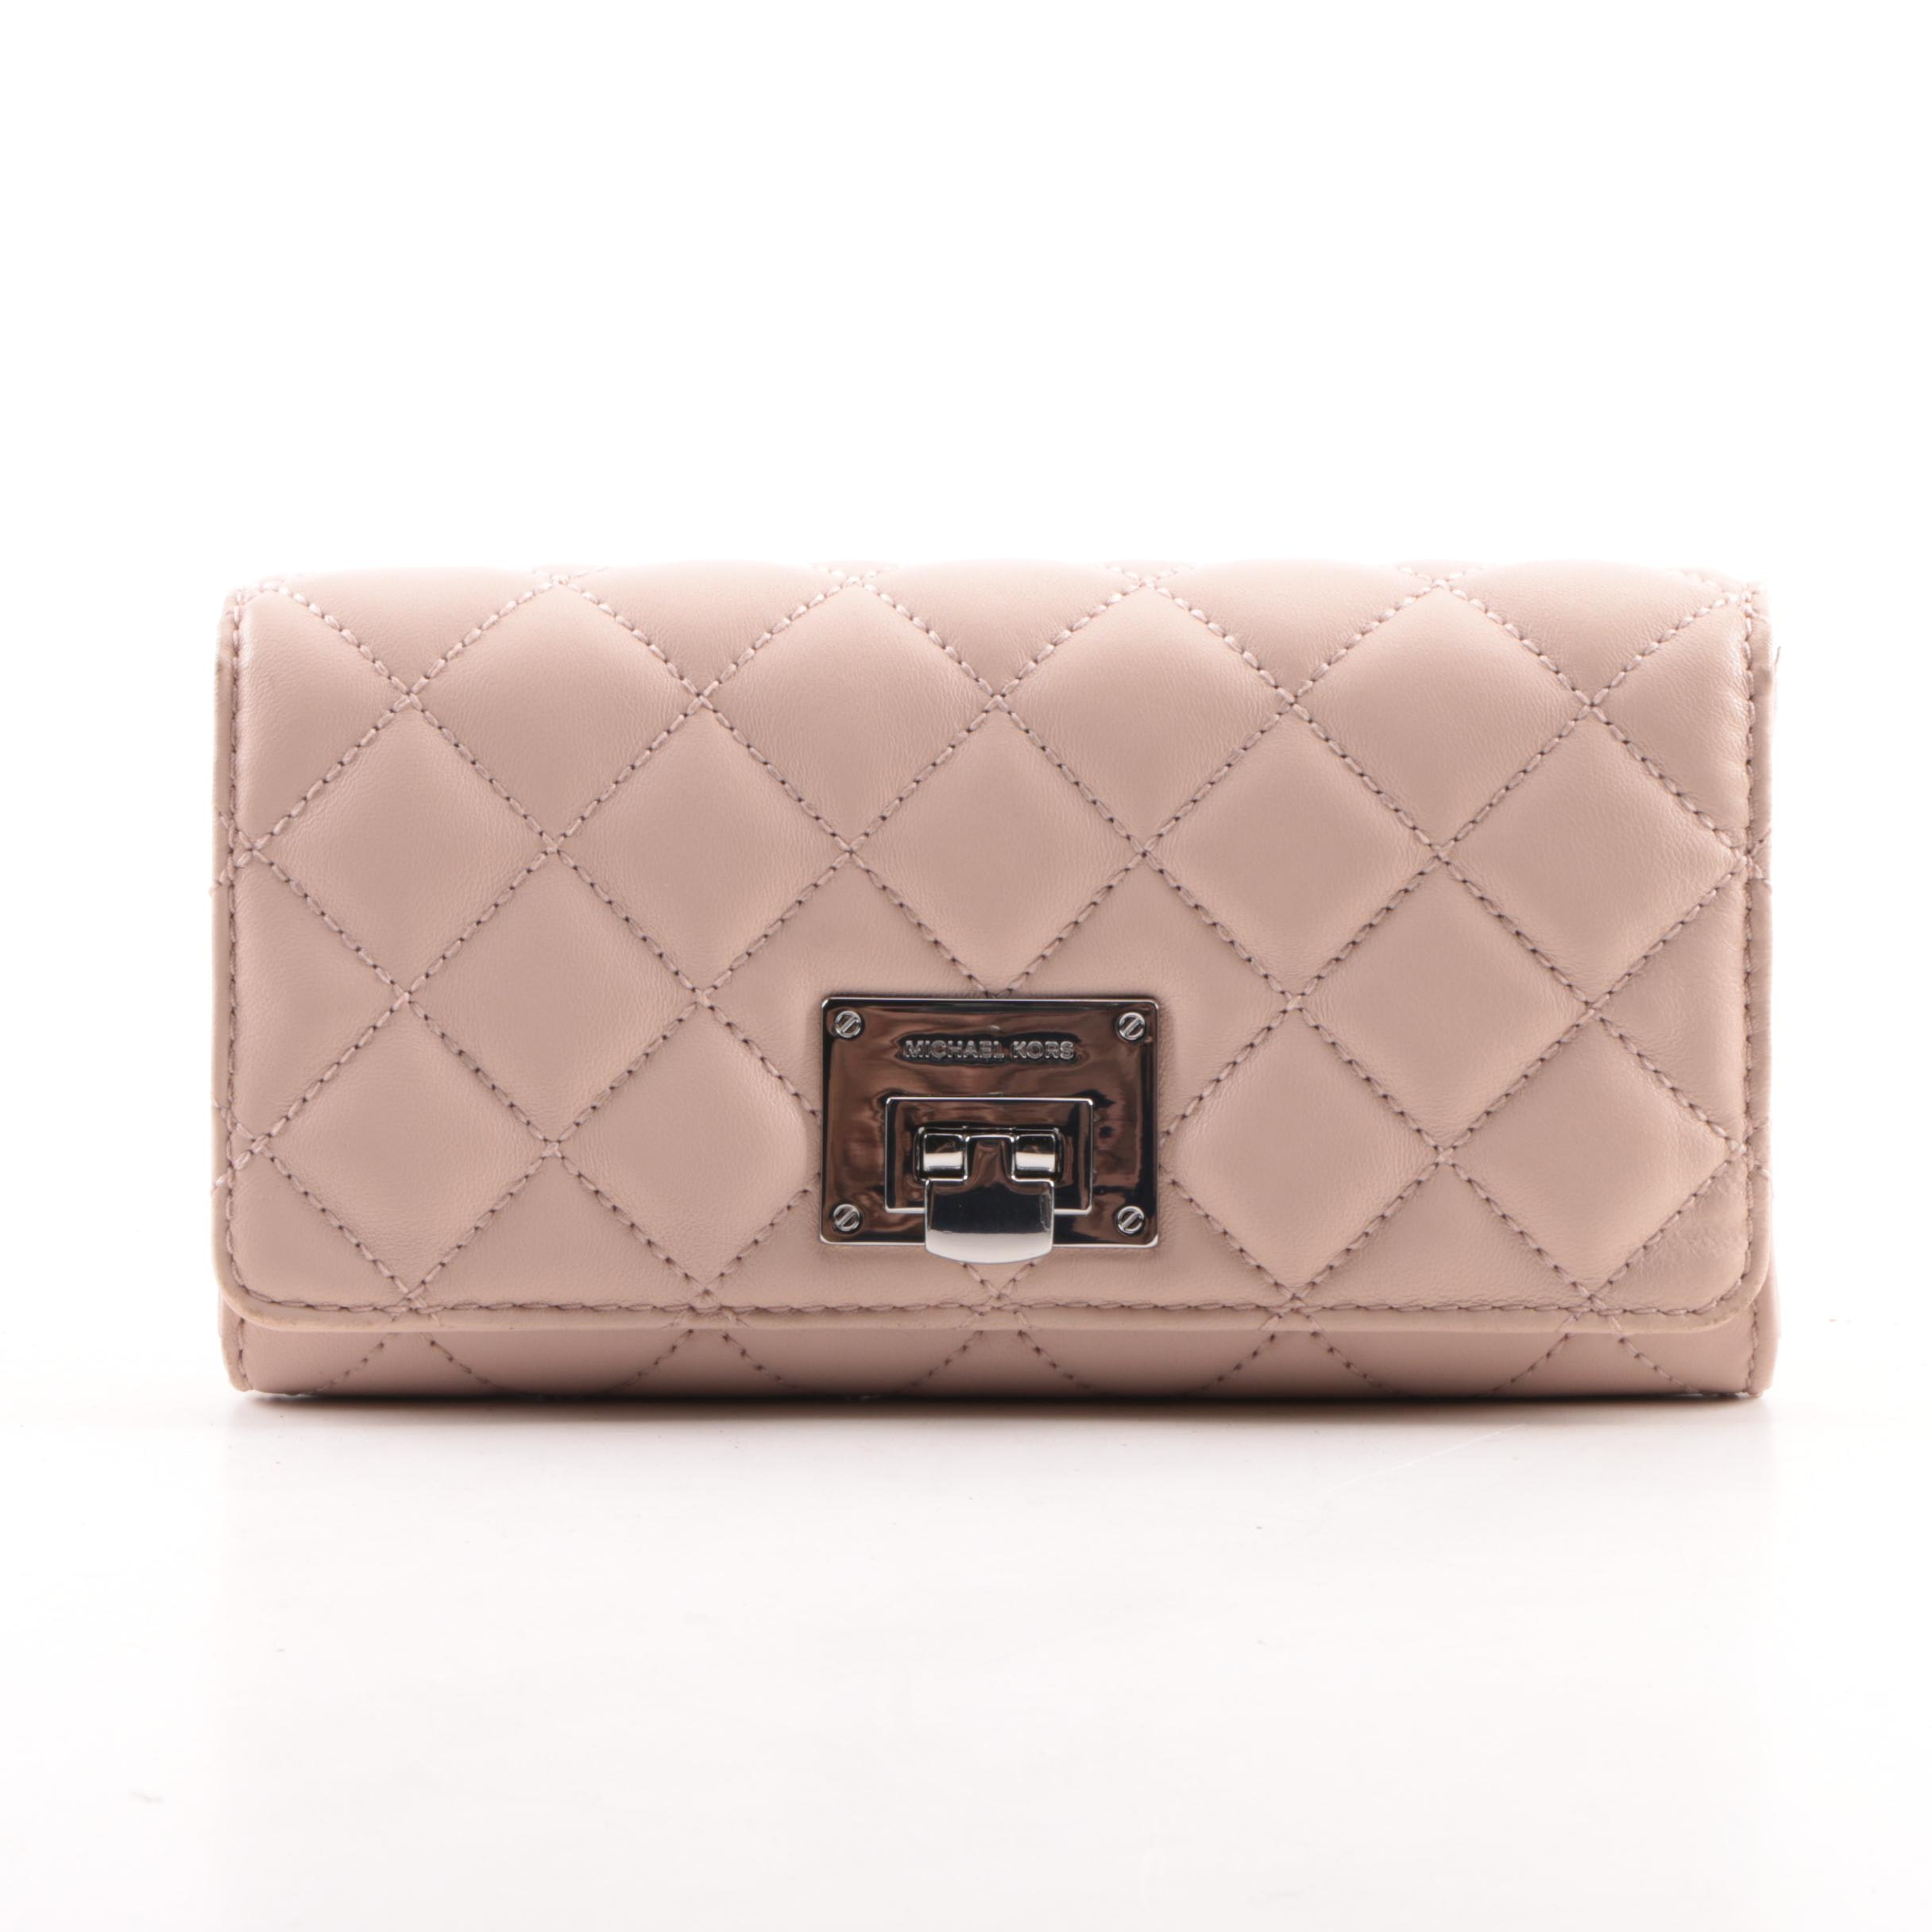 Michael Kors Pink Quilted Leather Wallet